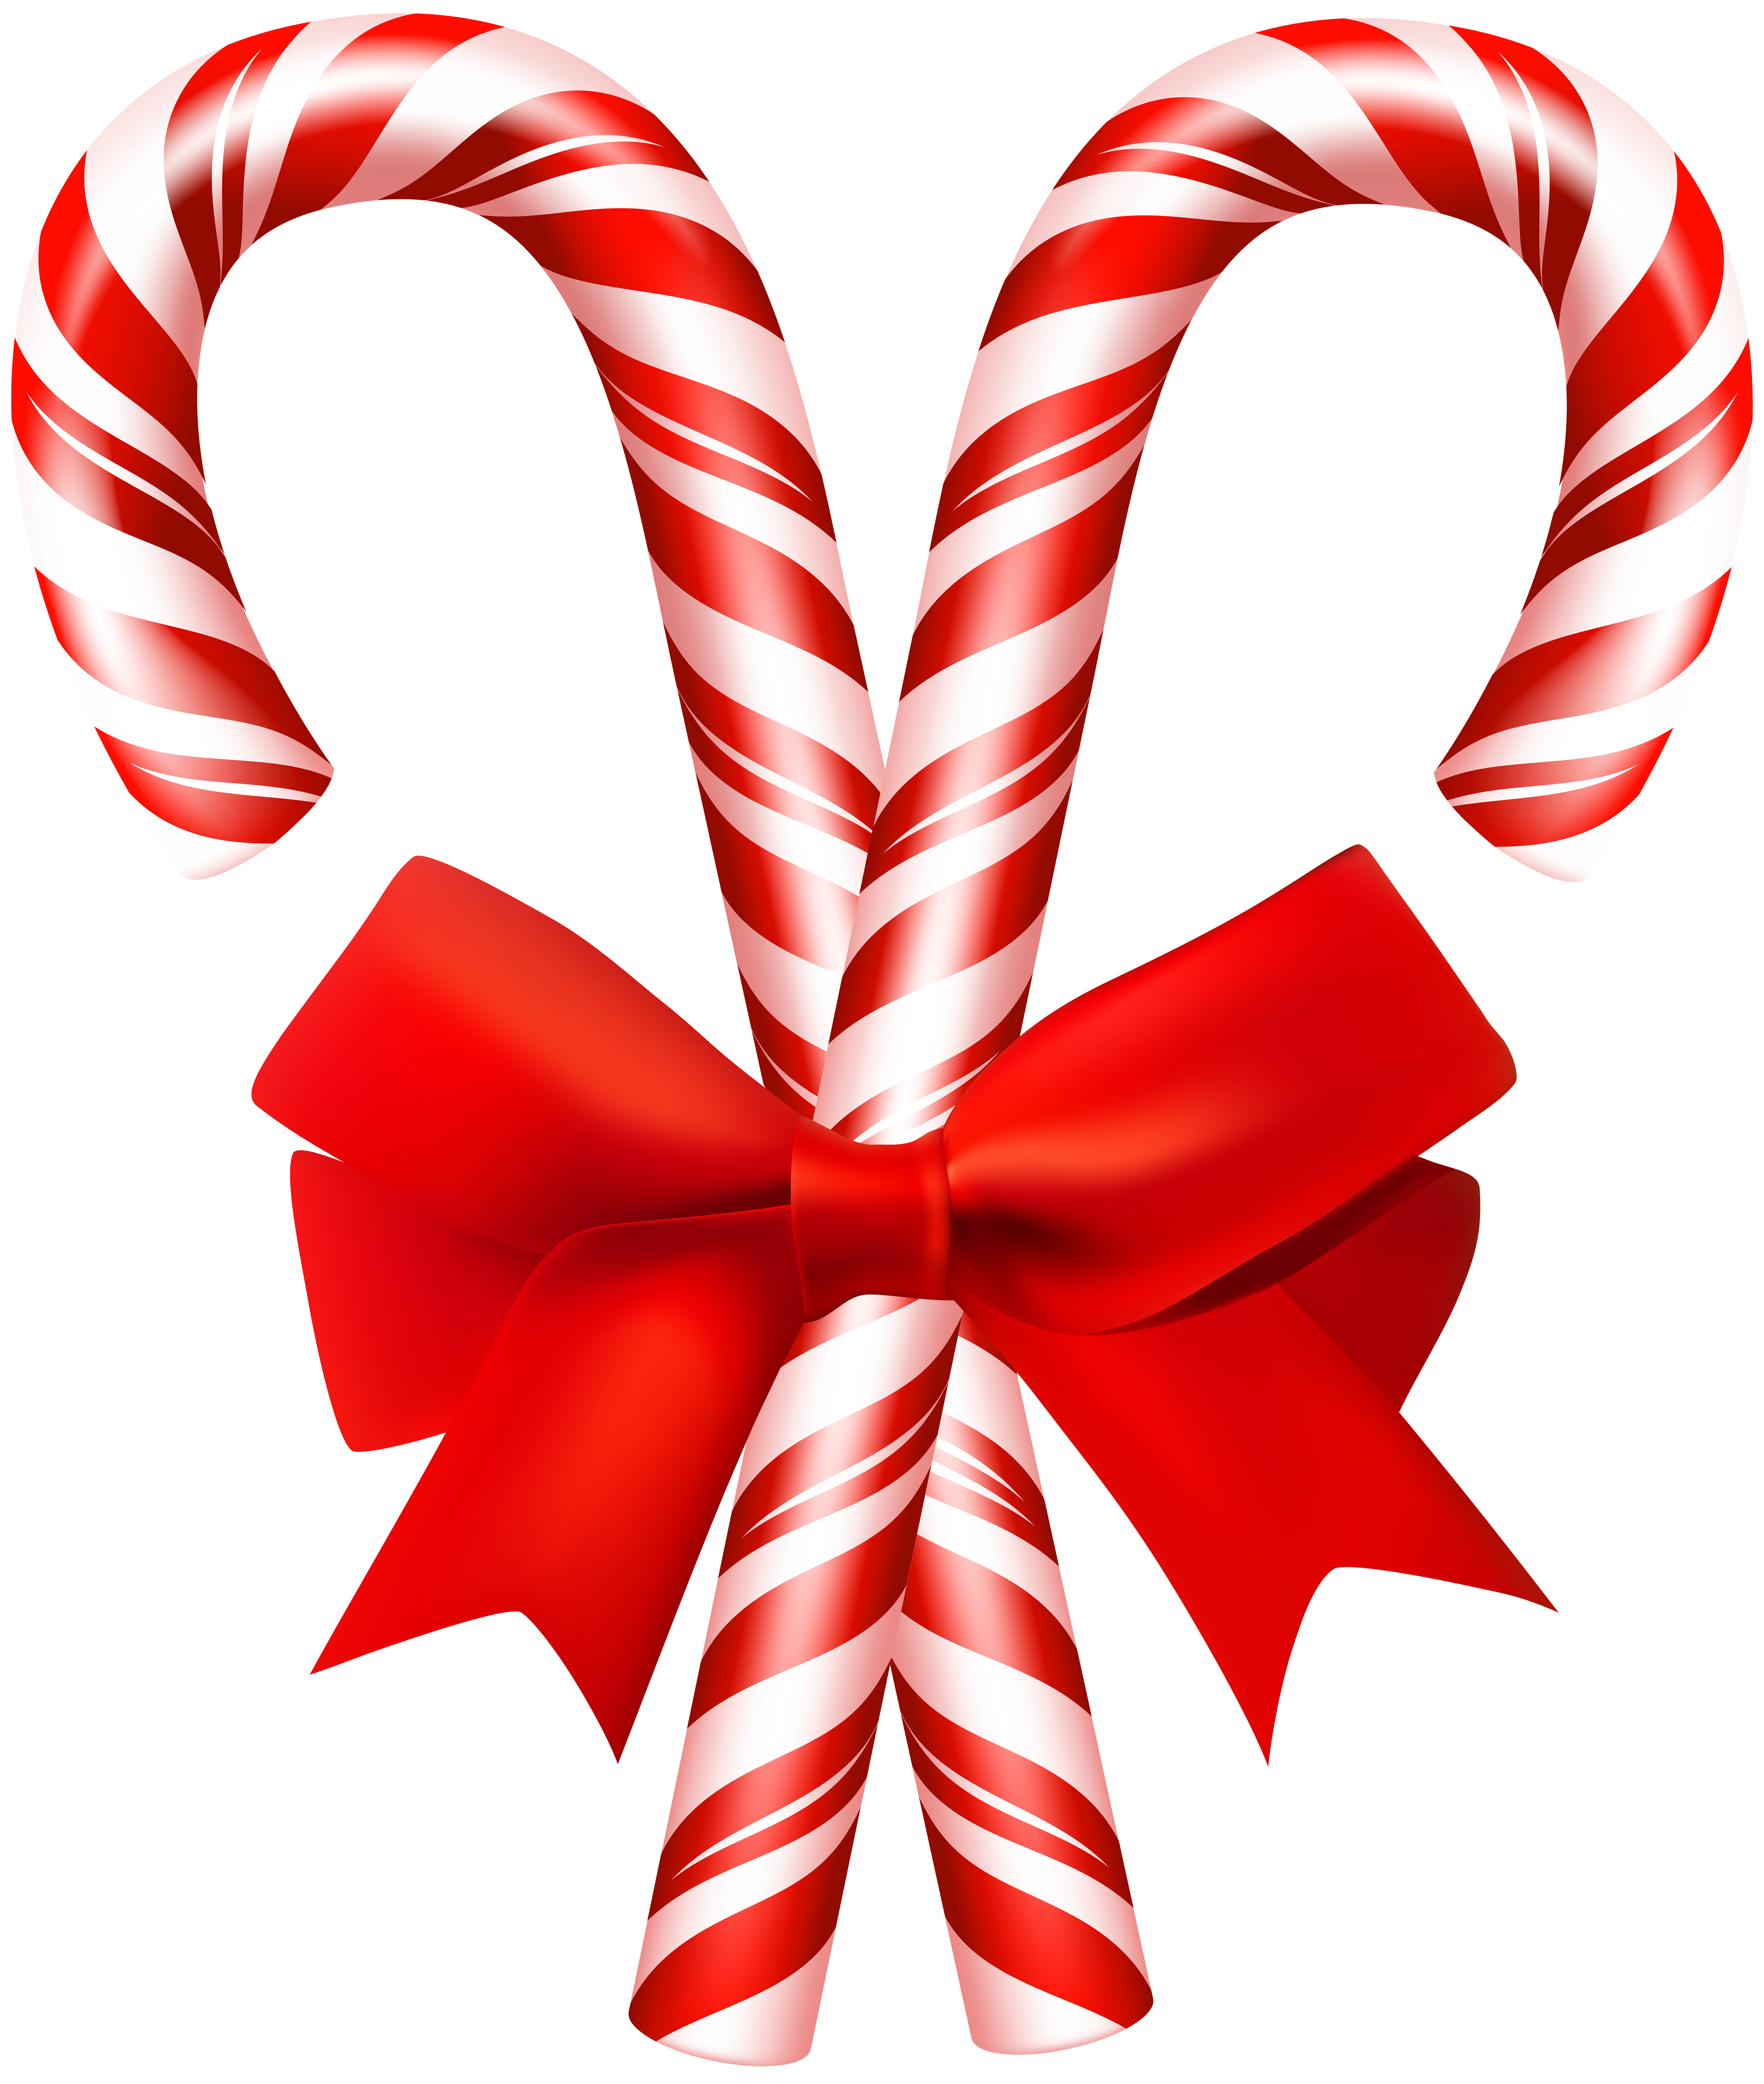 Png candy cane. Christmas canes clip art